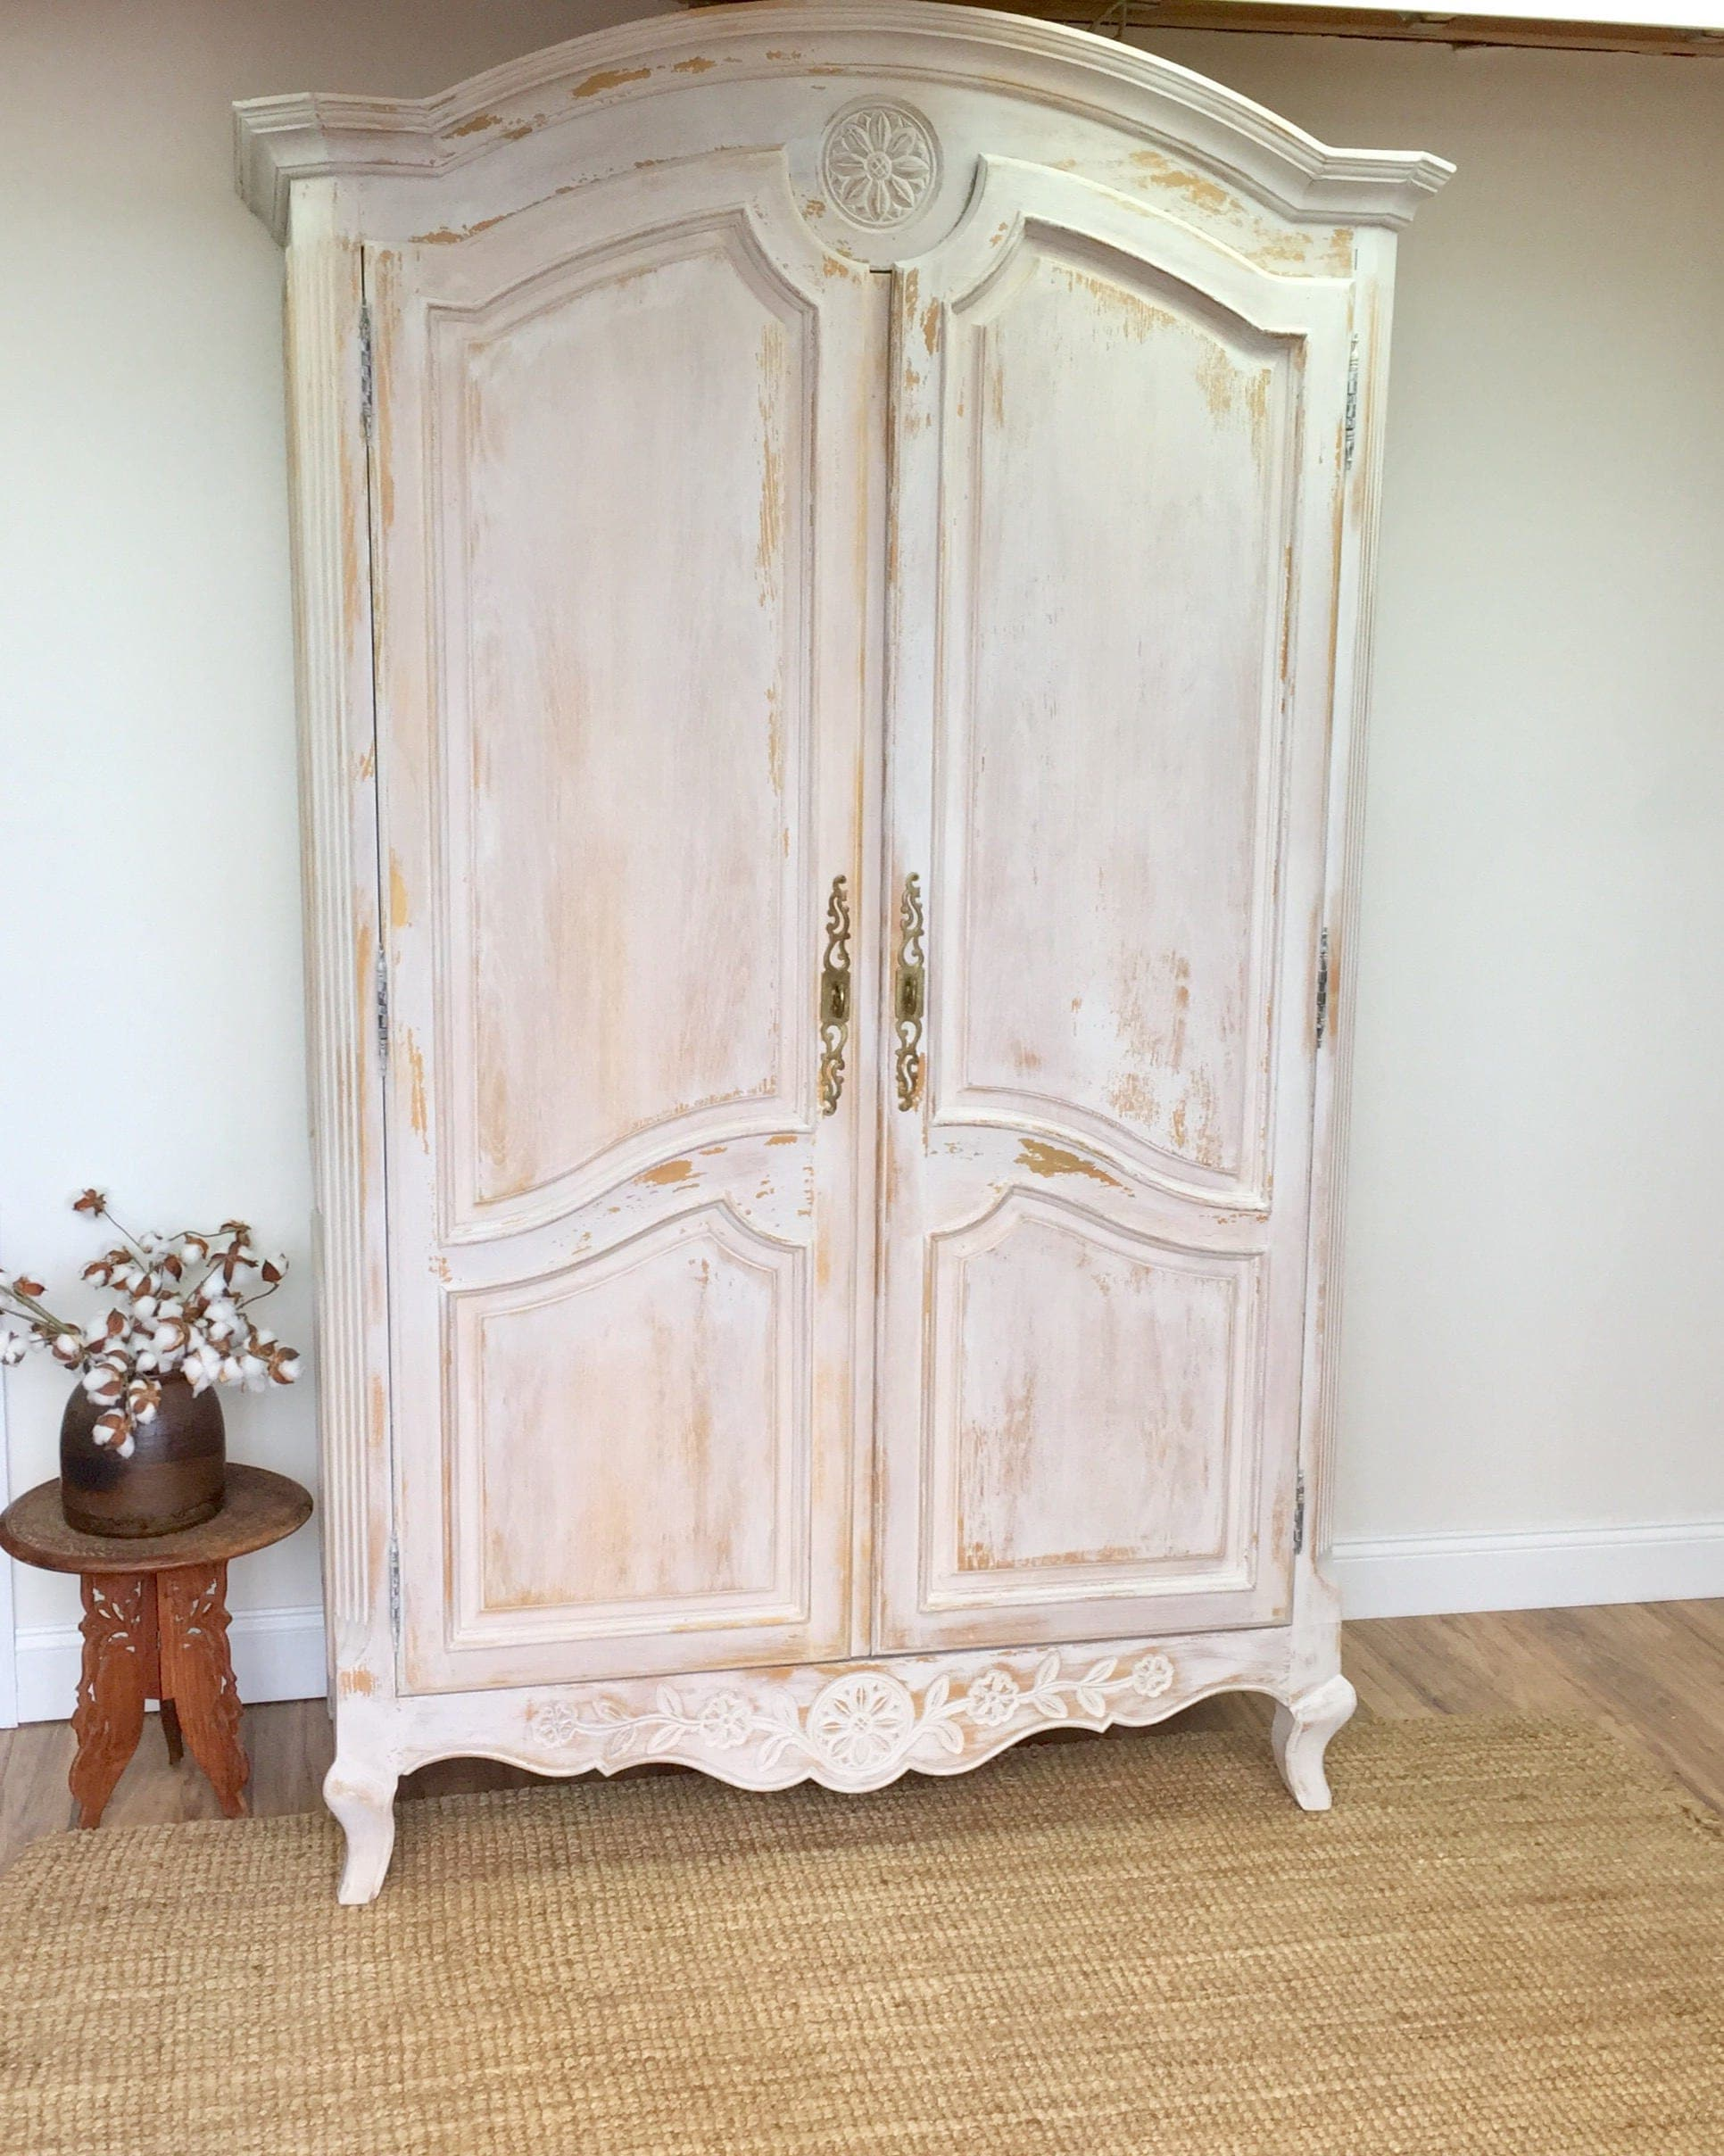 large armoire french provincial style shabby chic. Black Bedroom Furniture Sets. Home Design Ideas